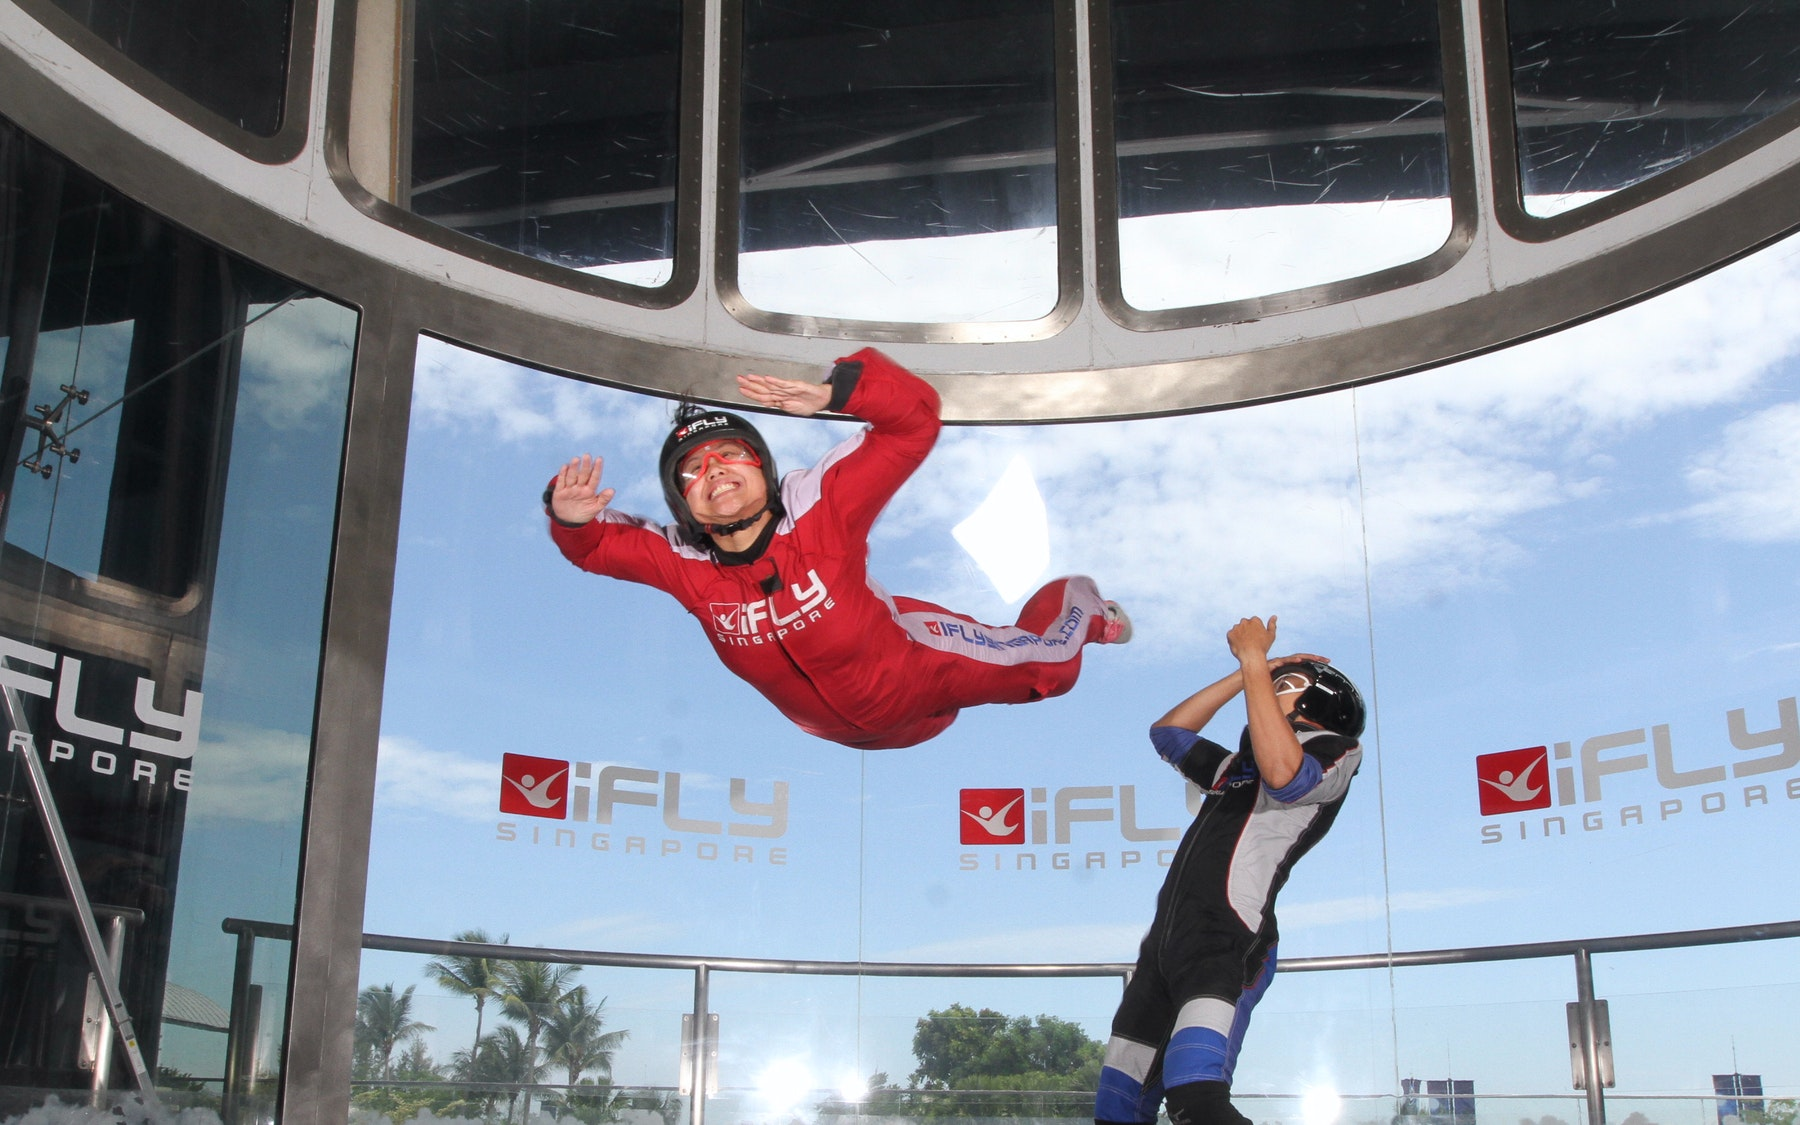 iFly Singapore indoor skydiving